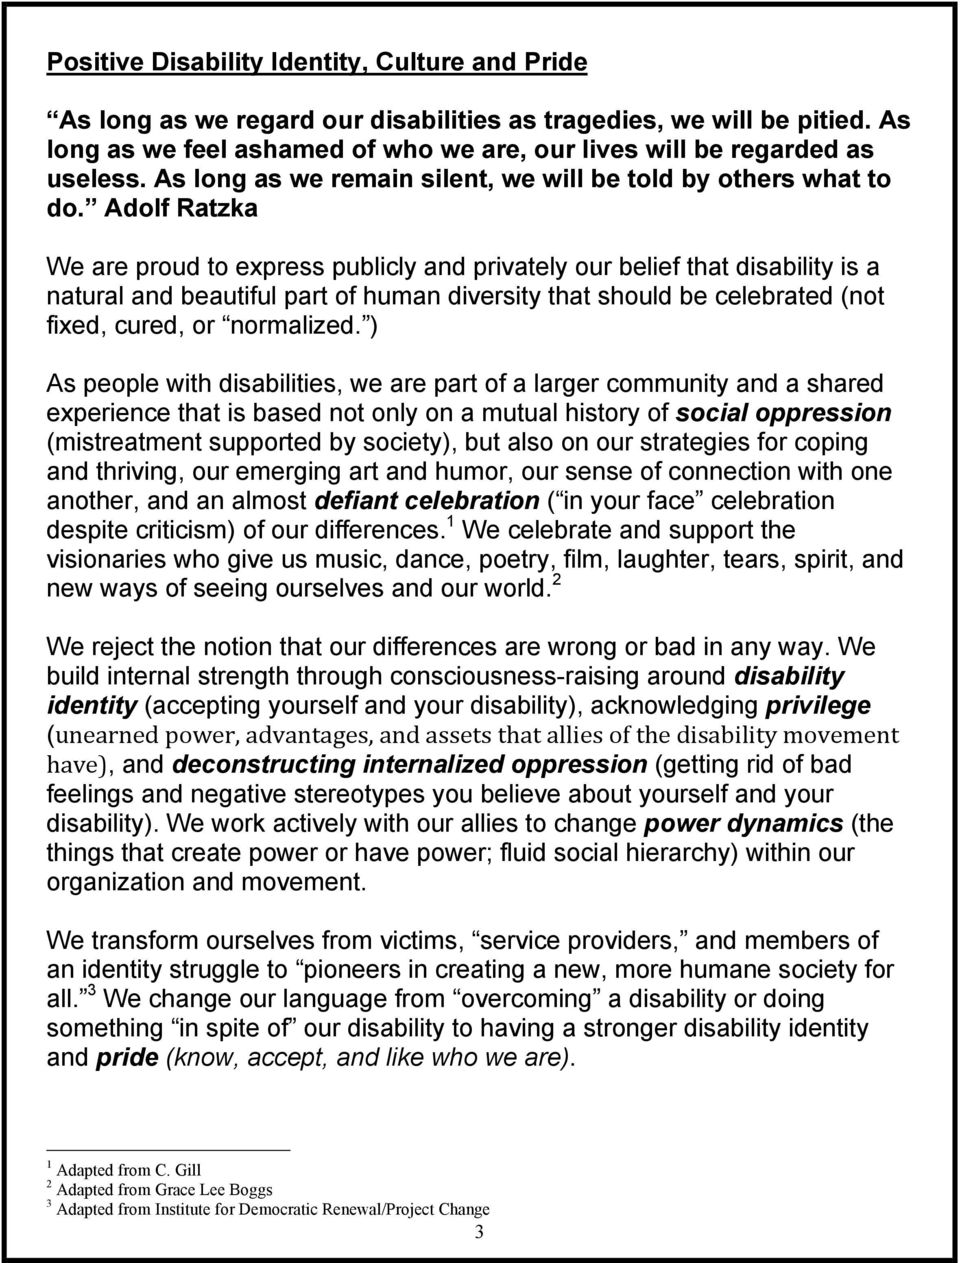 Adolf Ratzka We are proud to express publicly and privately our belief that disability is a natural and beautiful part of human diversity that should be celebrated (not fixed, cured, or normalized.